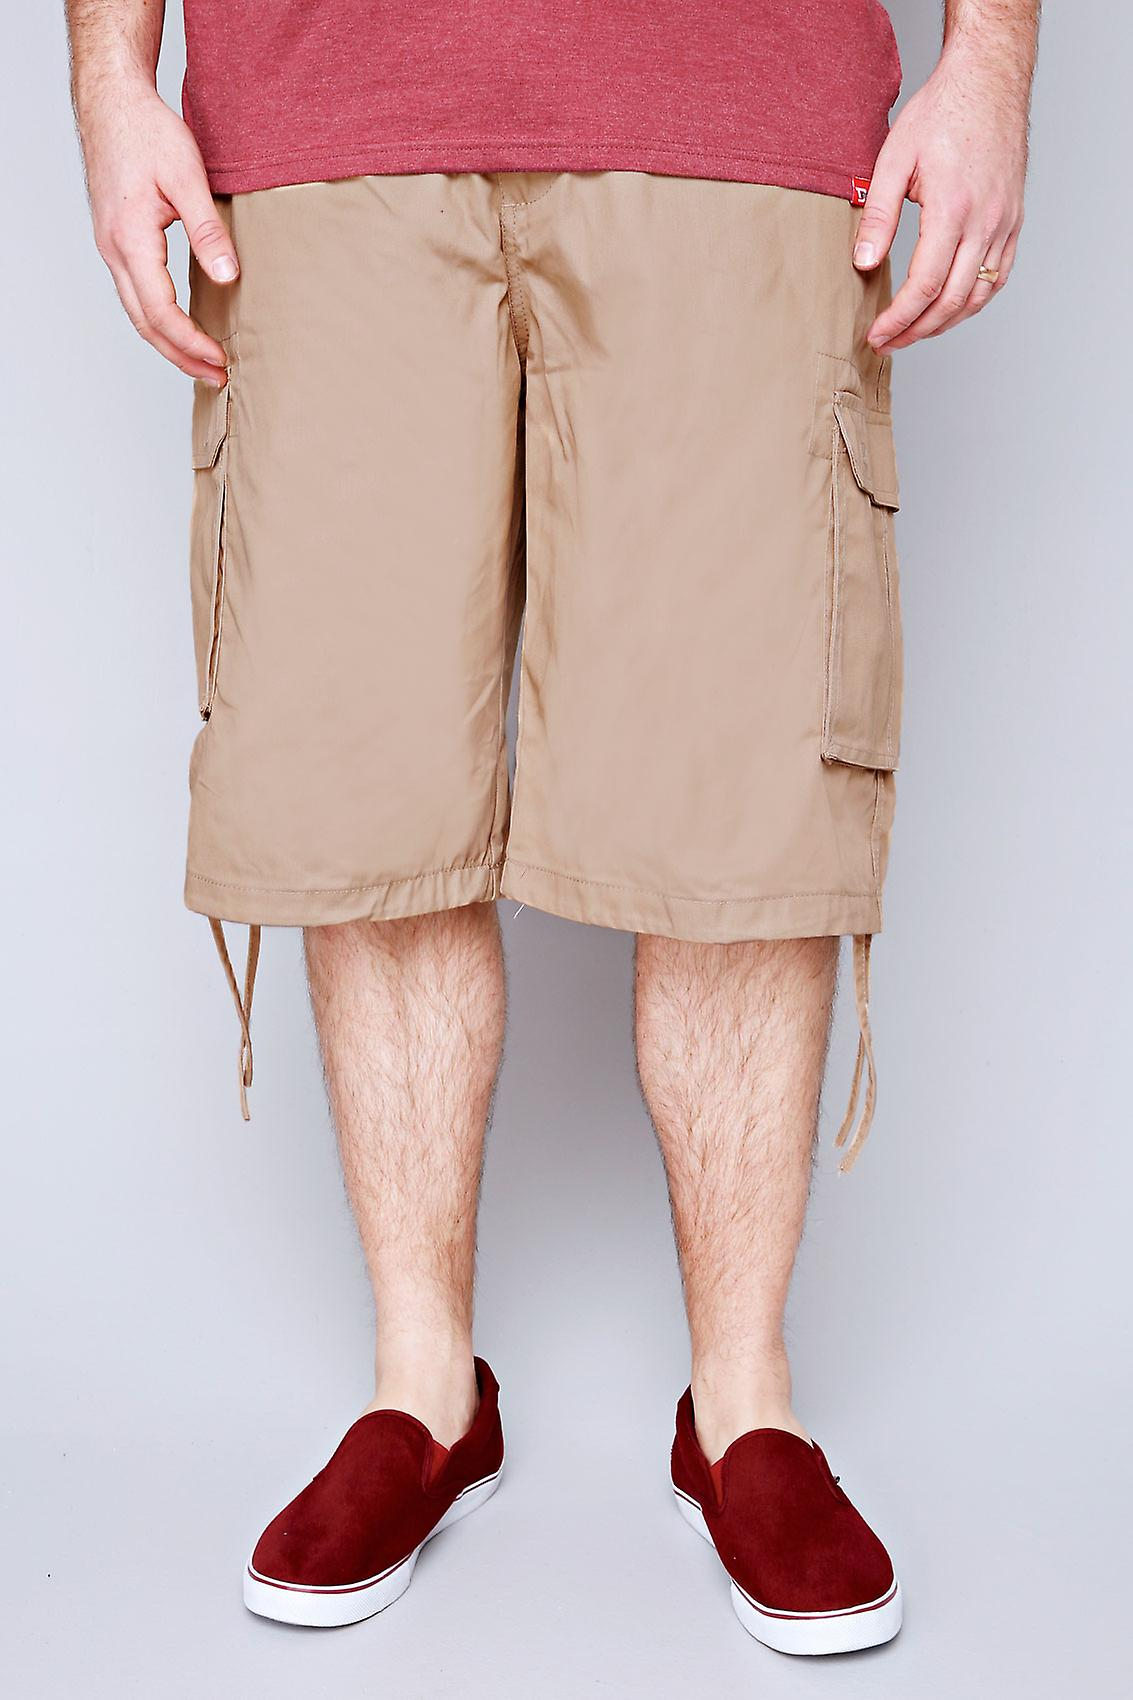 NOIZ Light Brown Cotton Cargo Shorts With Pockets